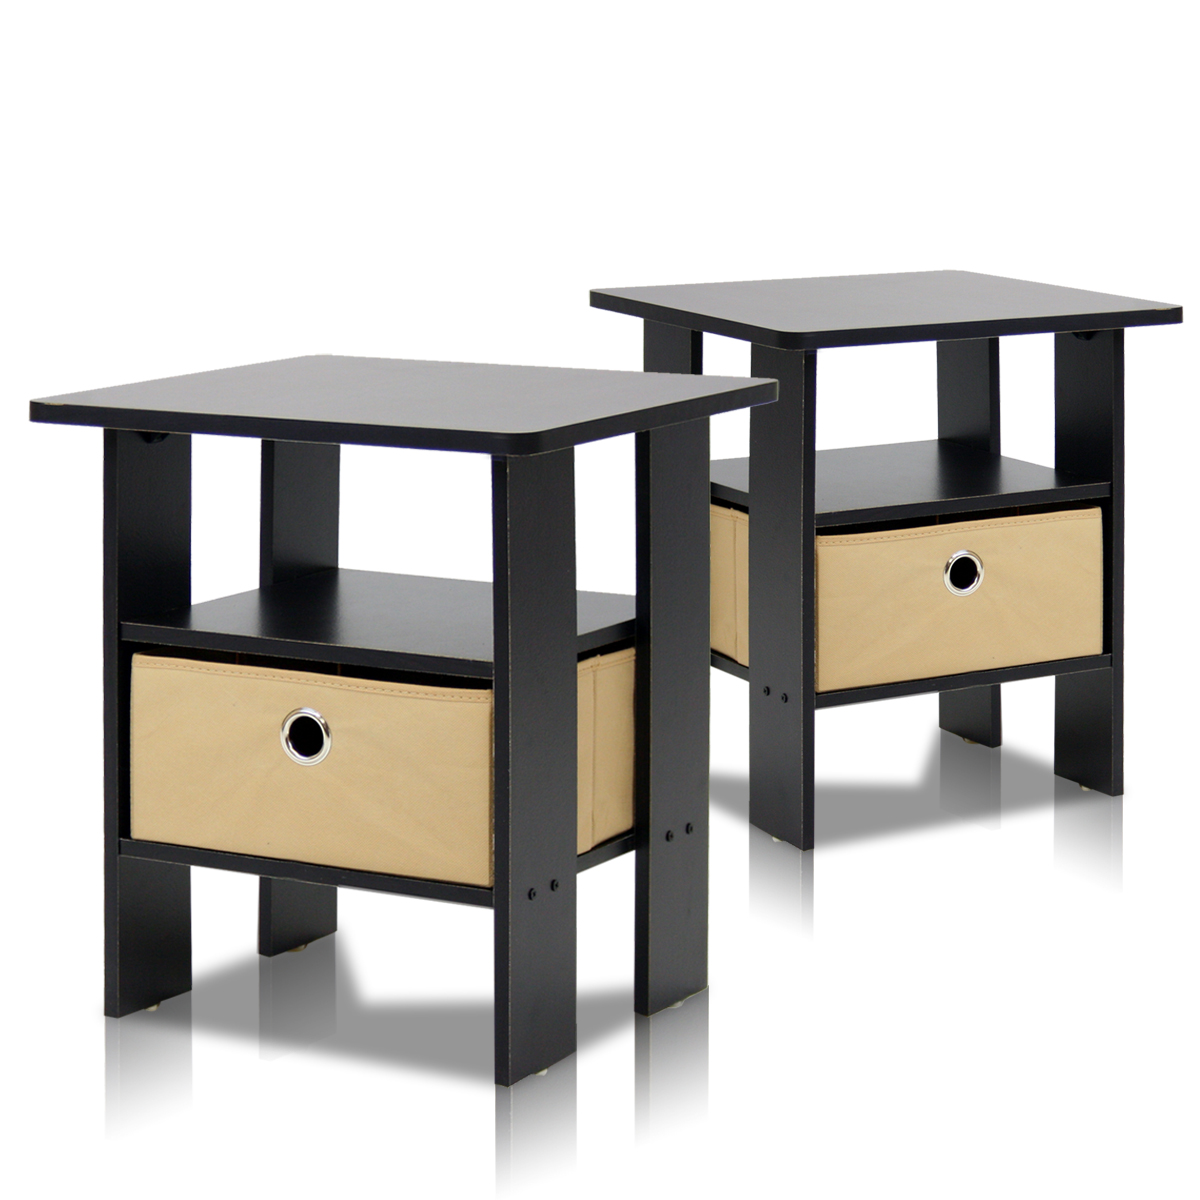 Product Image Furinno Petite End Table Bedroom Night Stand, Set Of Two